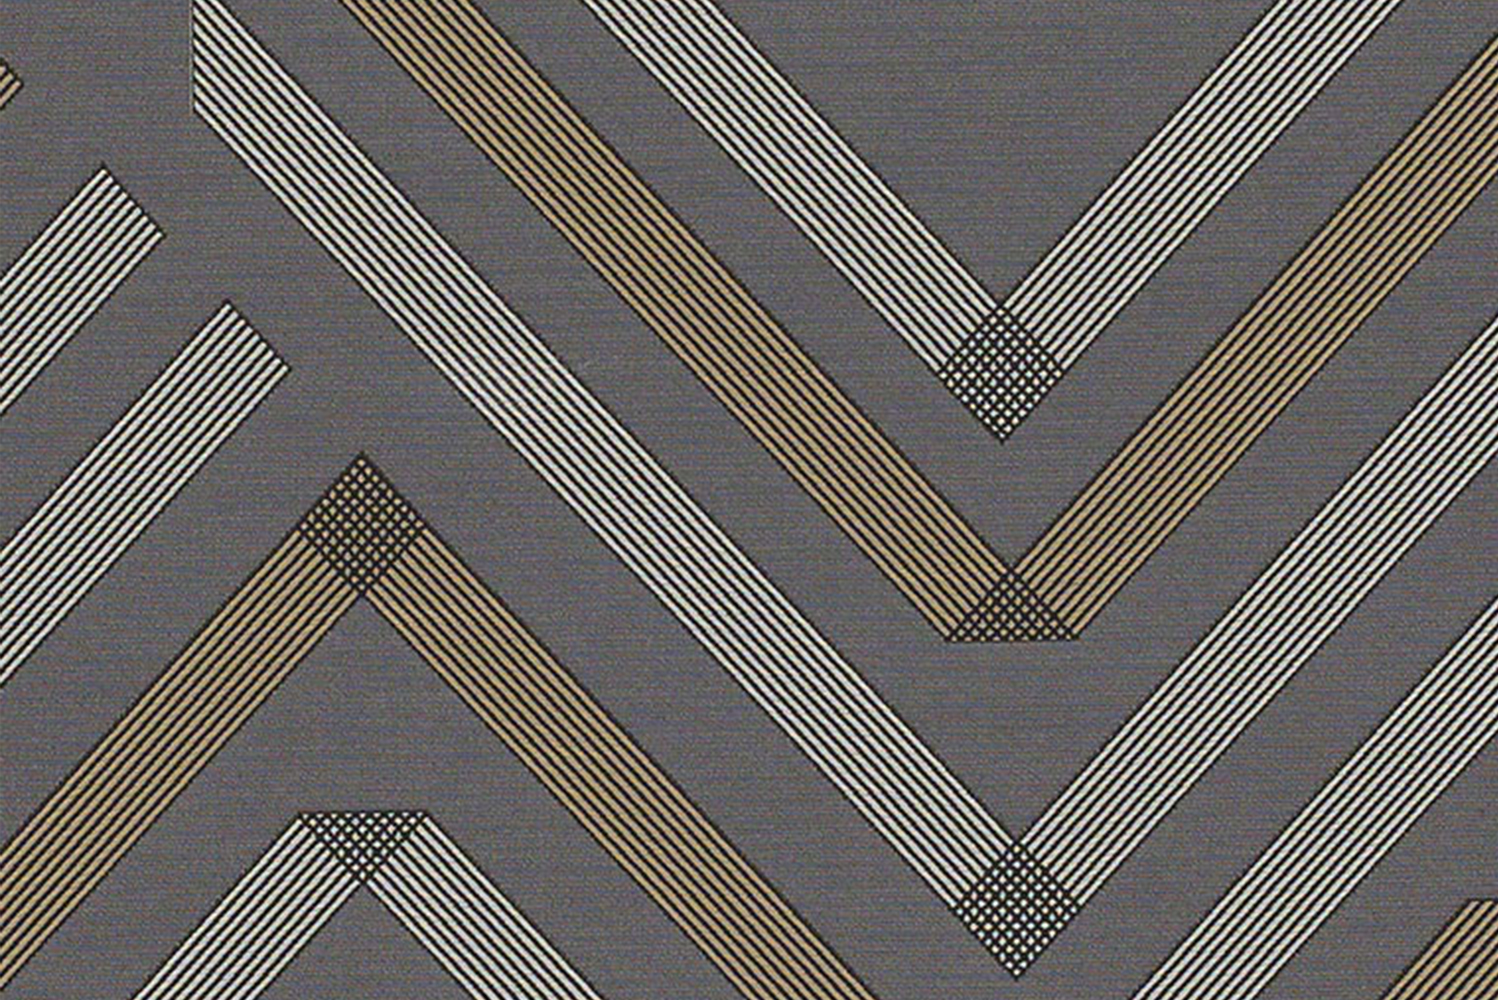 Patterns include stripes, swirls, geometric shapes, solids and zigzags.